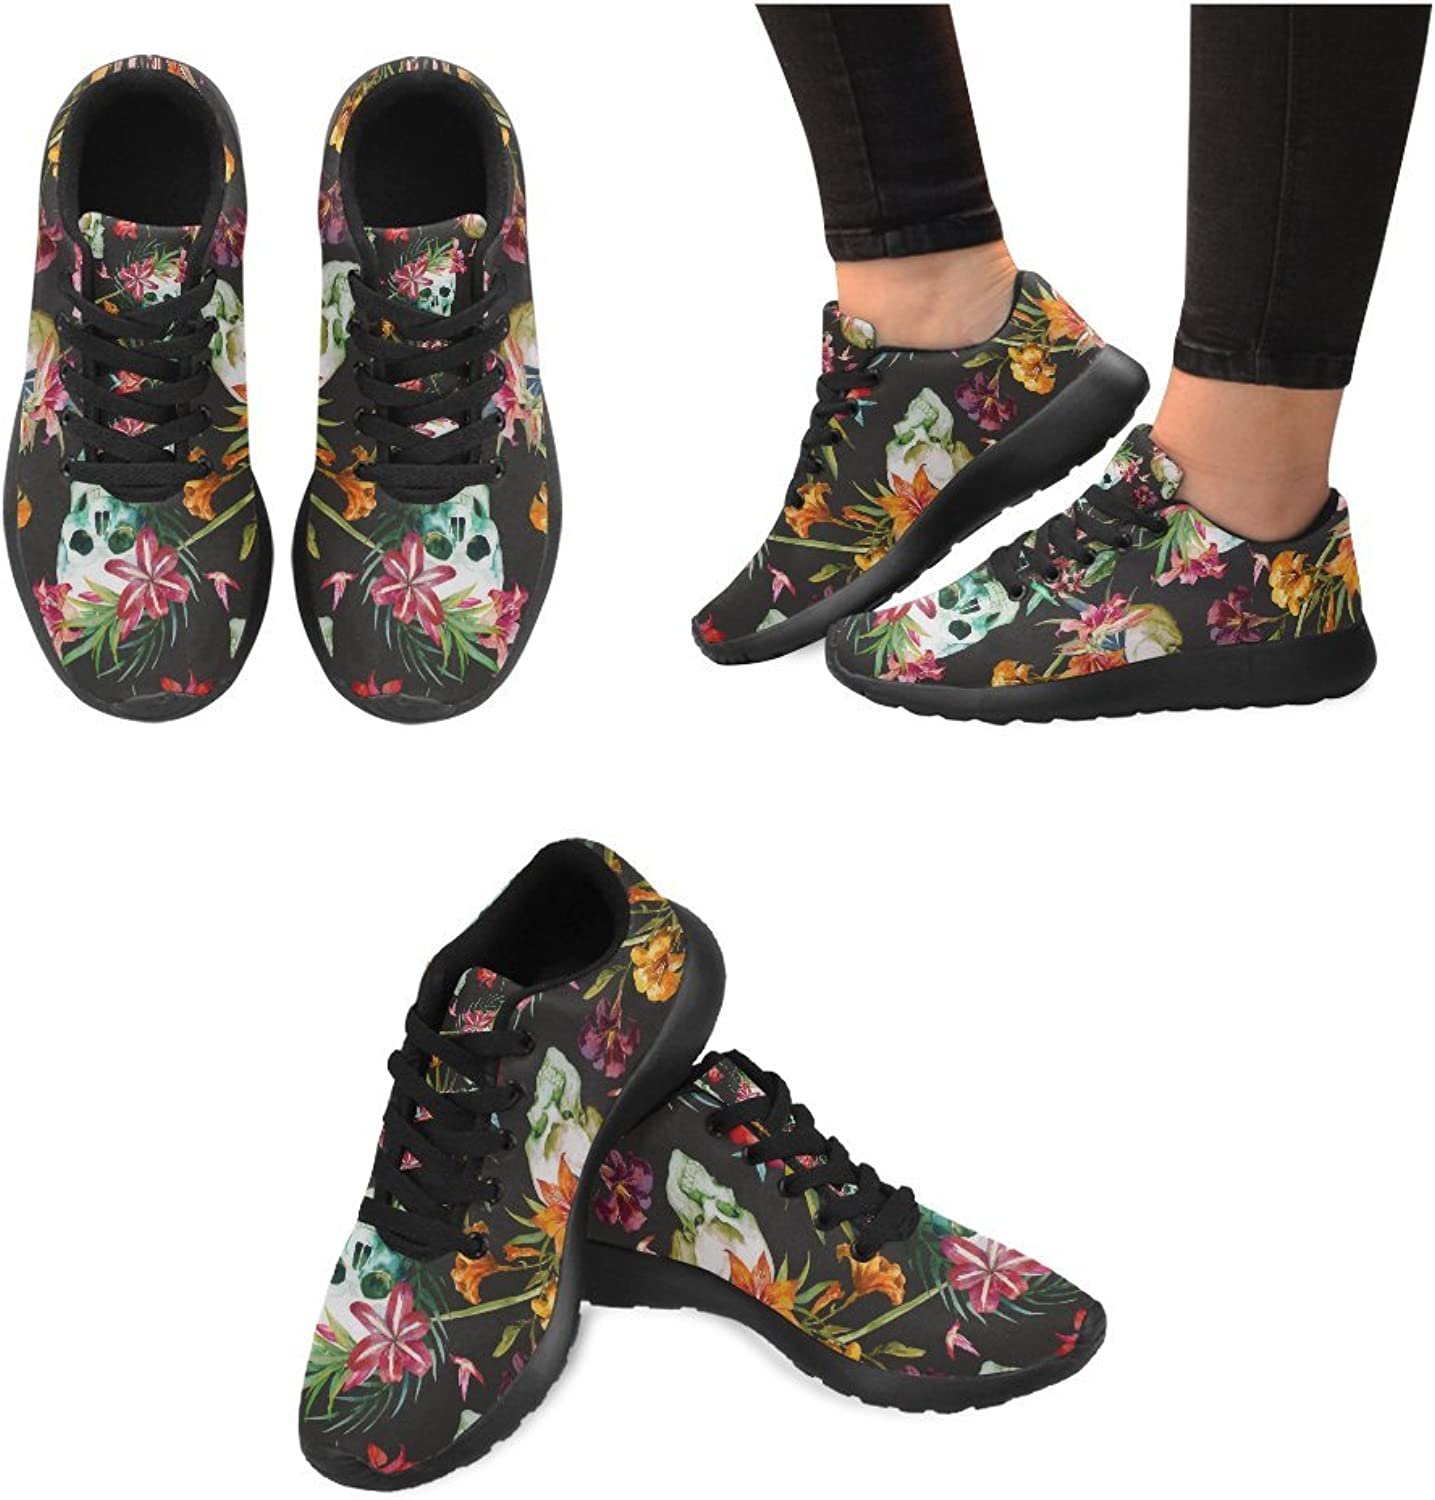 InterestPrint Graphic Skull Pattern Pattern Print on Women's Running shoes Casual Lightweight Athletic Sneakers US Size 6-15